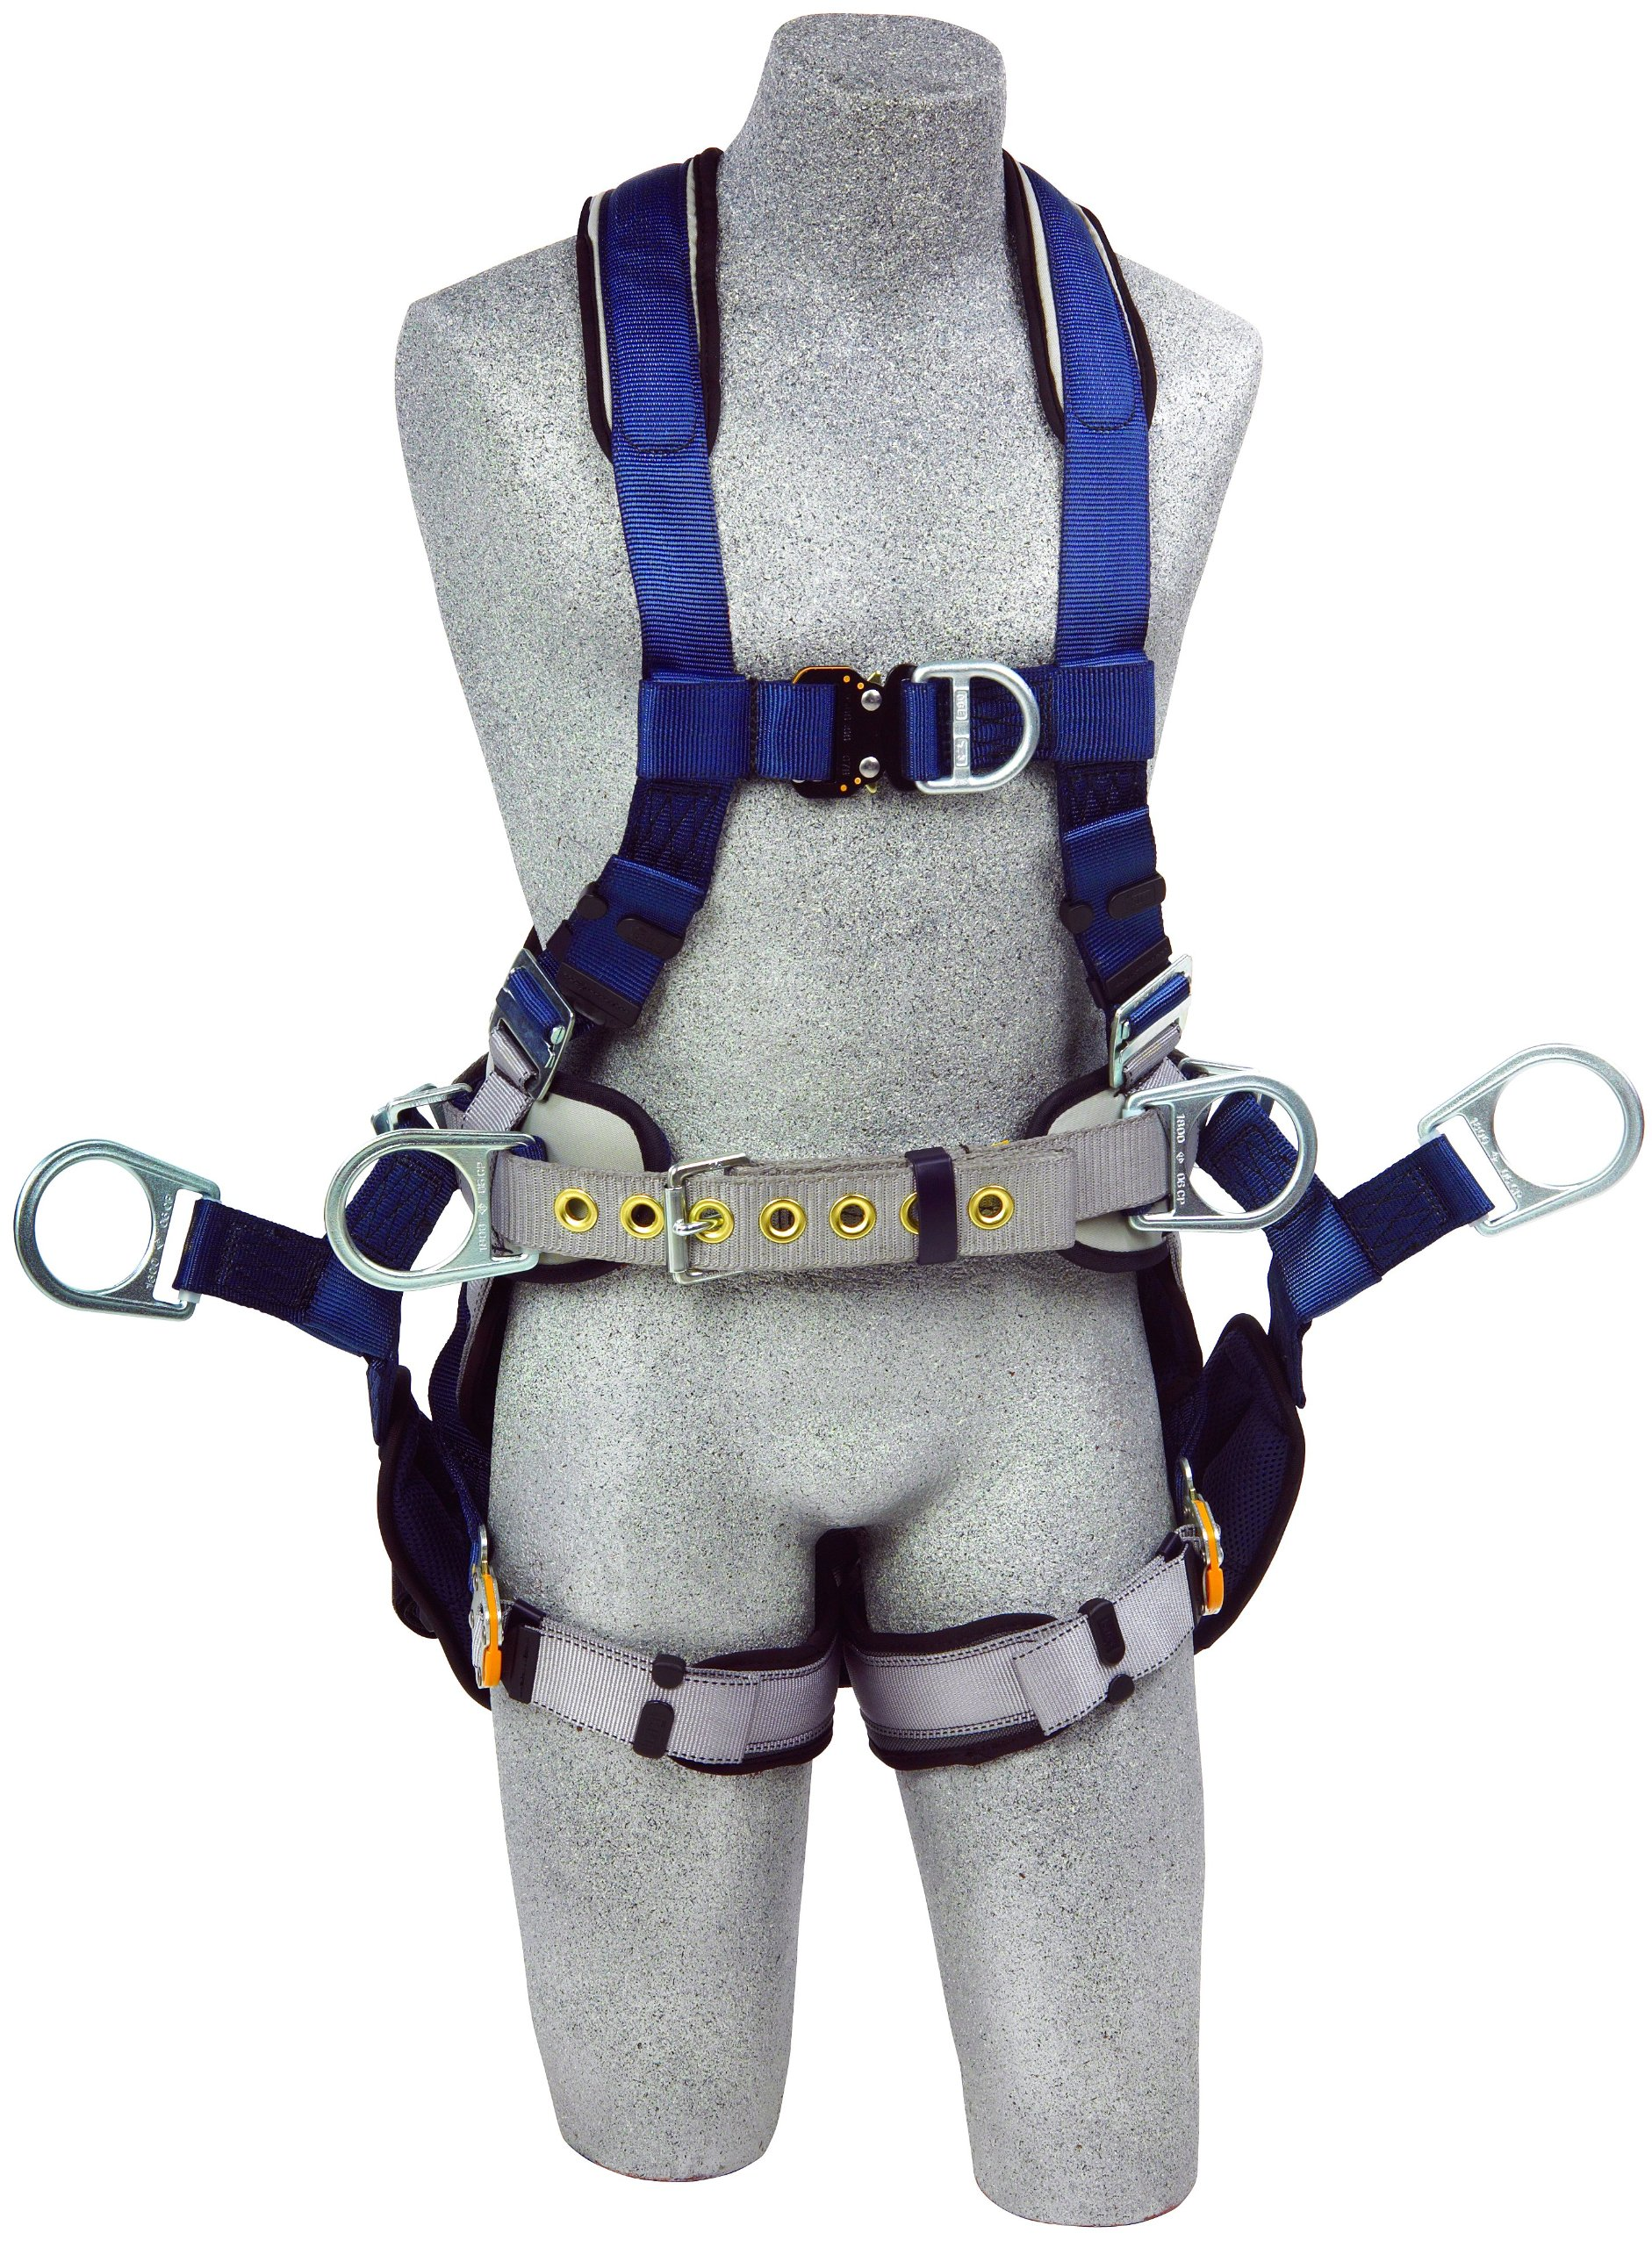 3M DBI-SALA ExoFit 1108652 Tower Climbing Harness, Front/Back/Side D-Rings, Belt/Back Pad, Seat Sling w/Position D-Rings, QC Buckles, Large, Blue/Gray by 3M Fall Protection Business (Image #1)